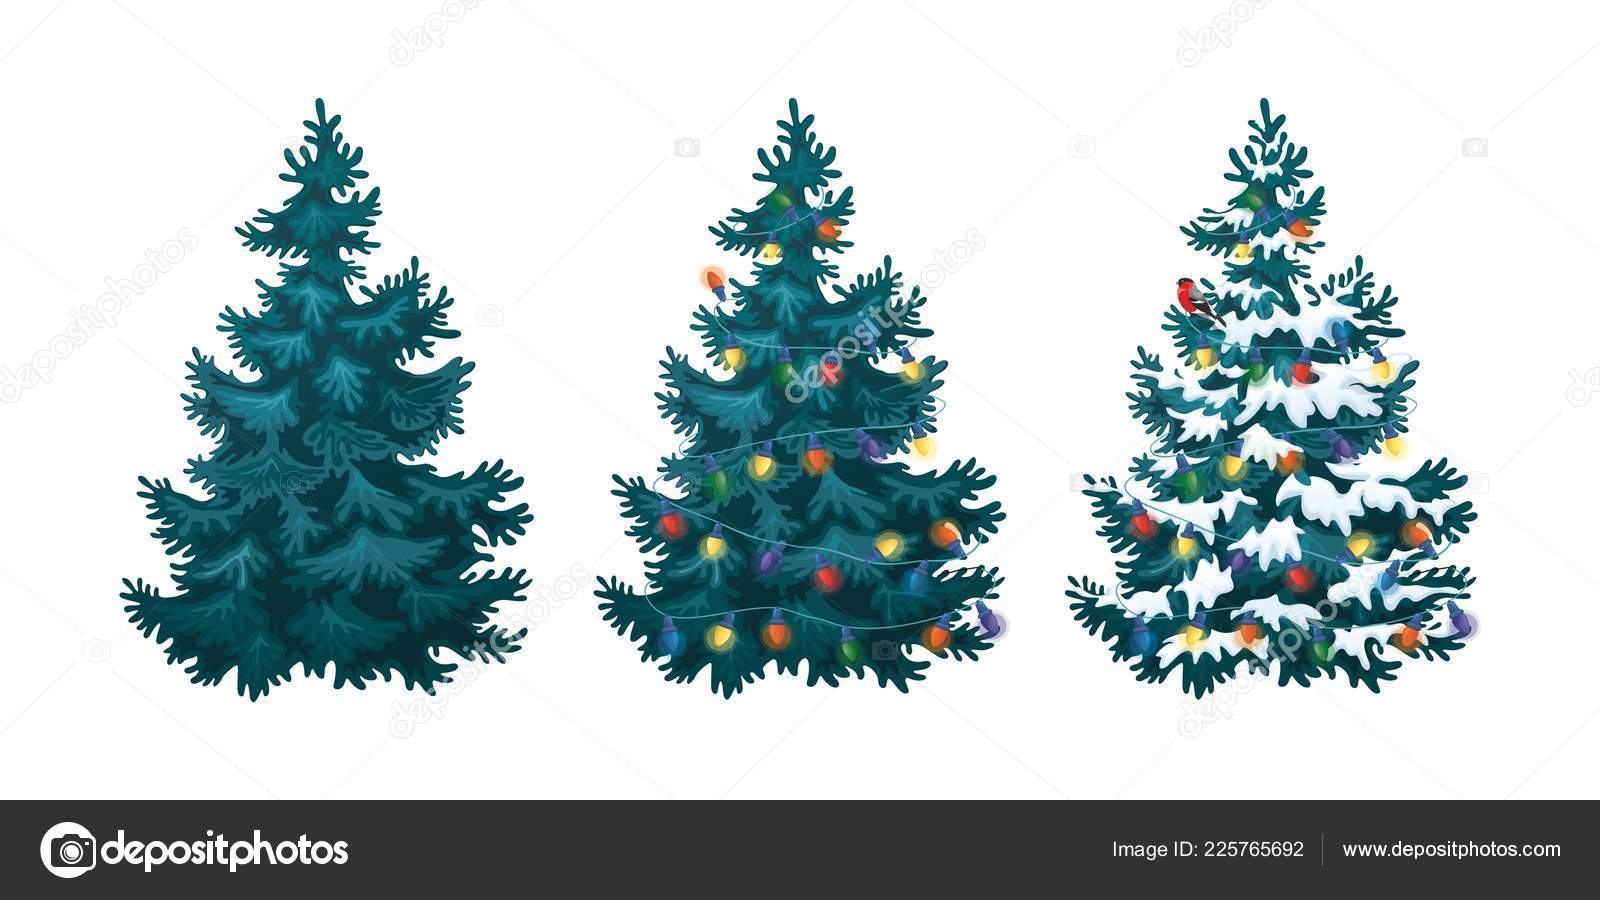 Christmas Tree Illustration.Vector Illustration Decorated Christmas Tree Snow White